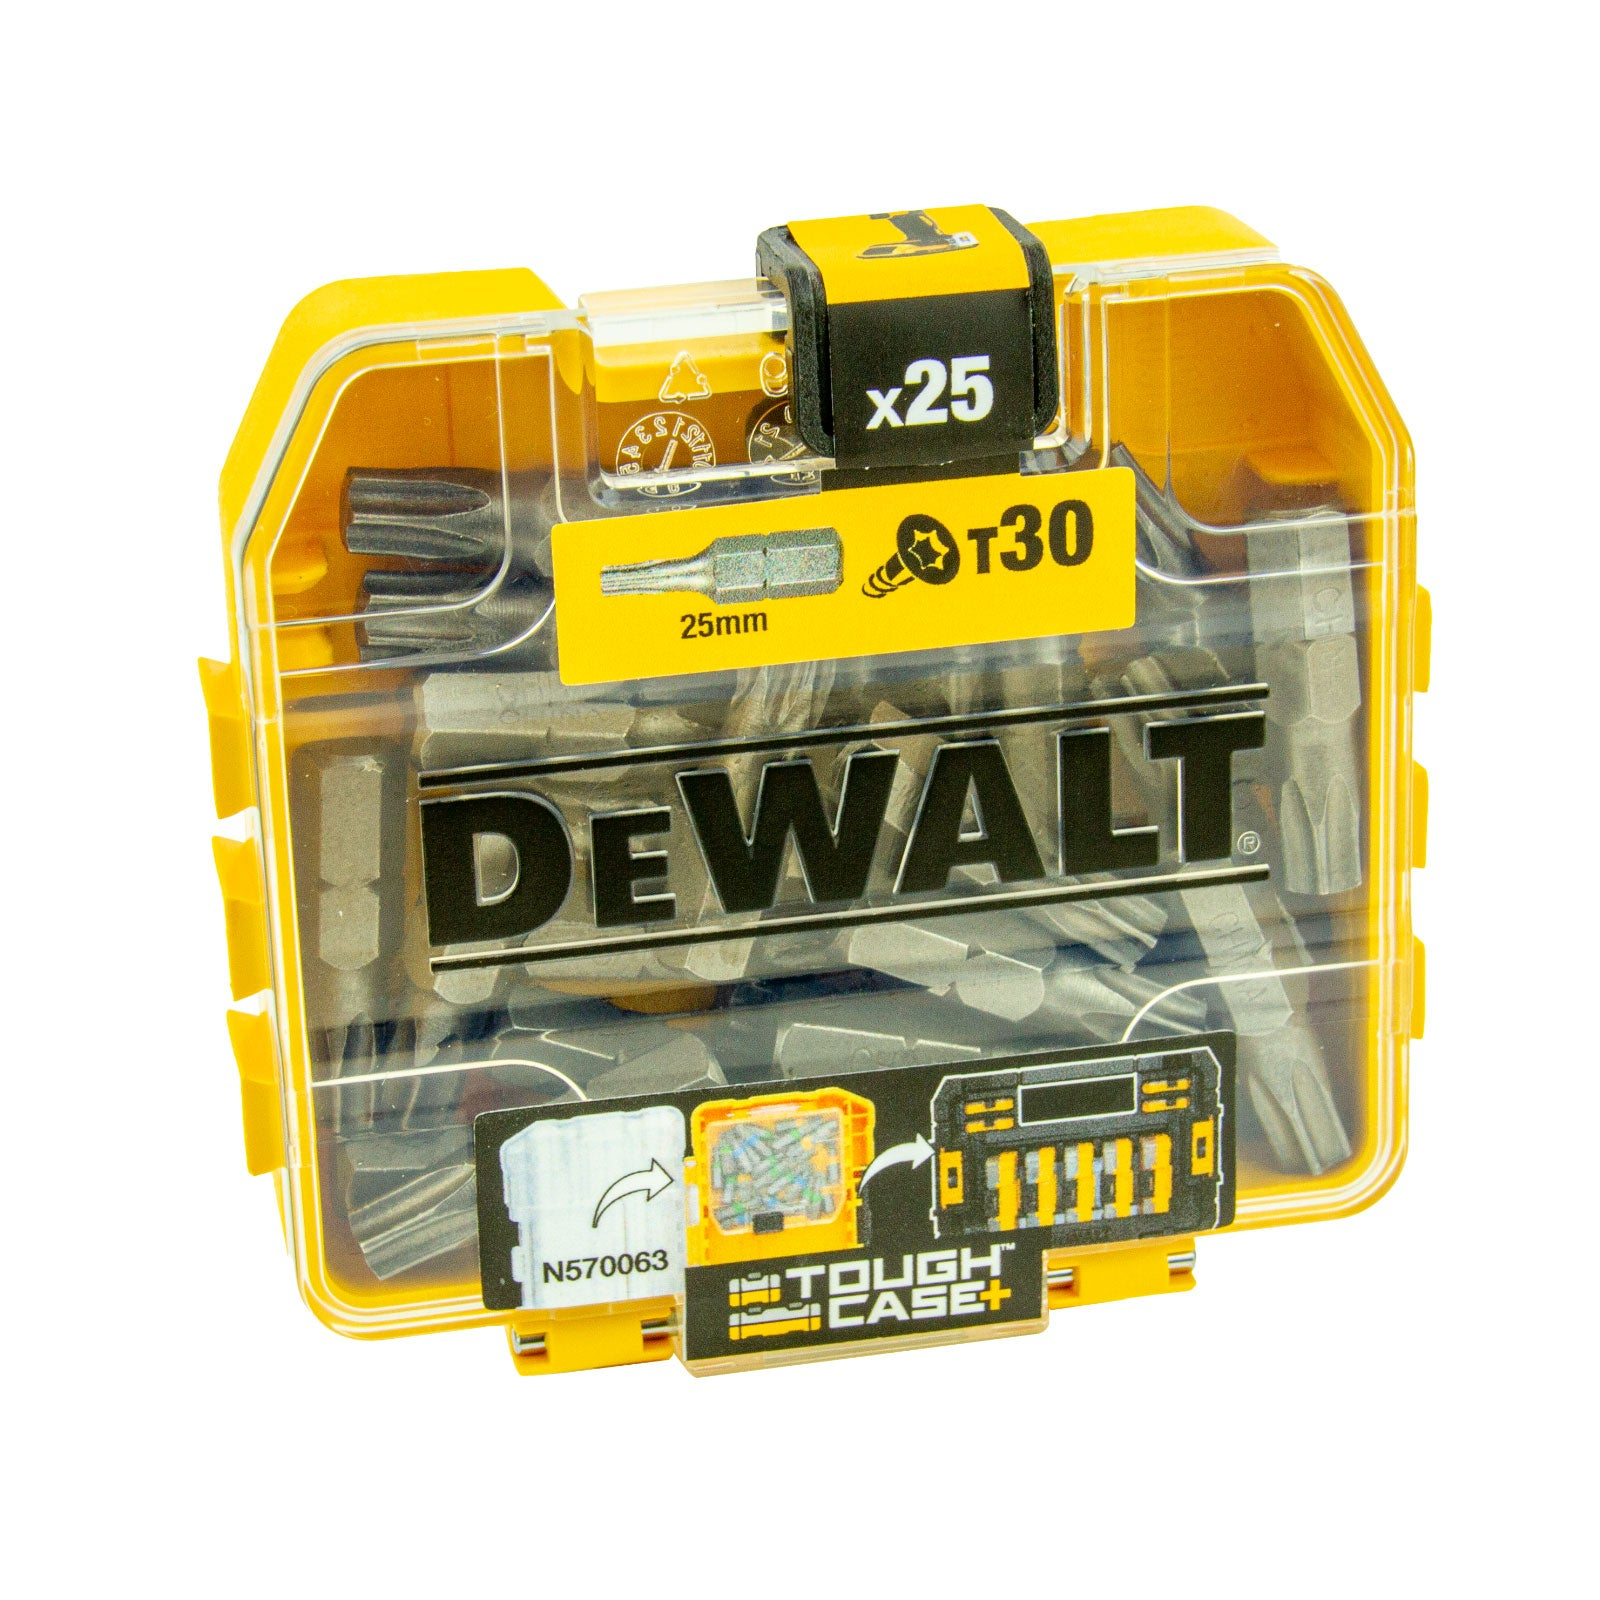 DeWalt 4 x Bit-Box DT7963-QZ, 100 x T30 Bit in Tough Box